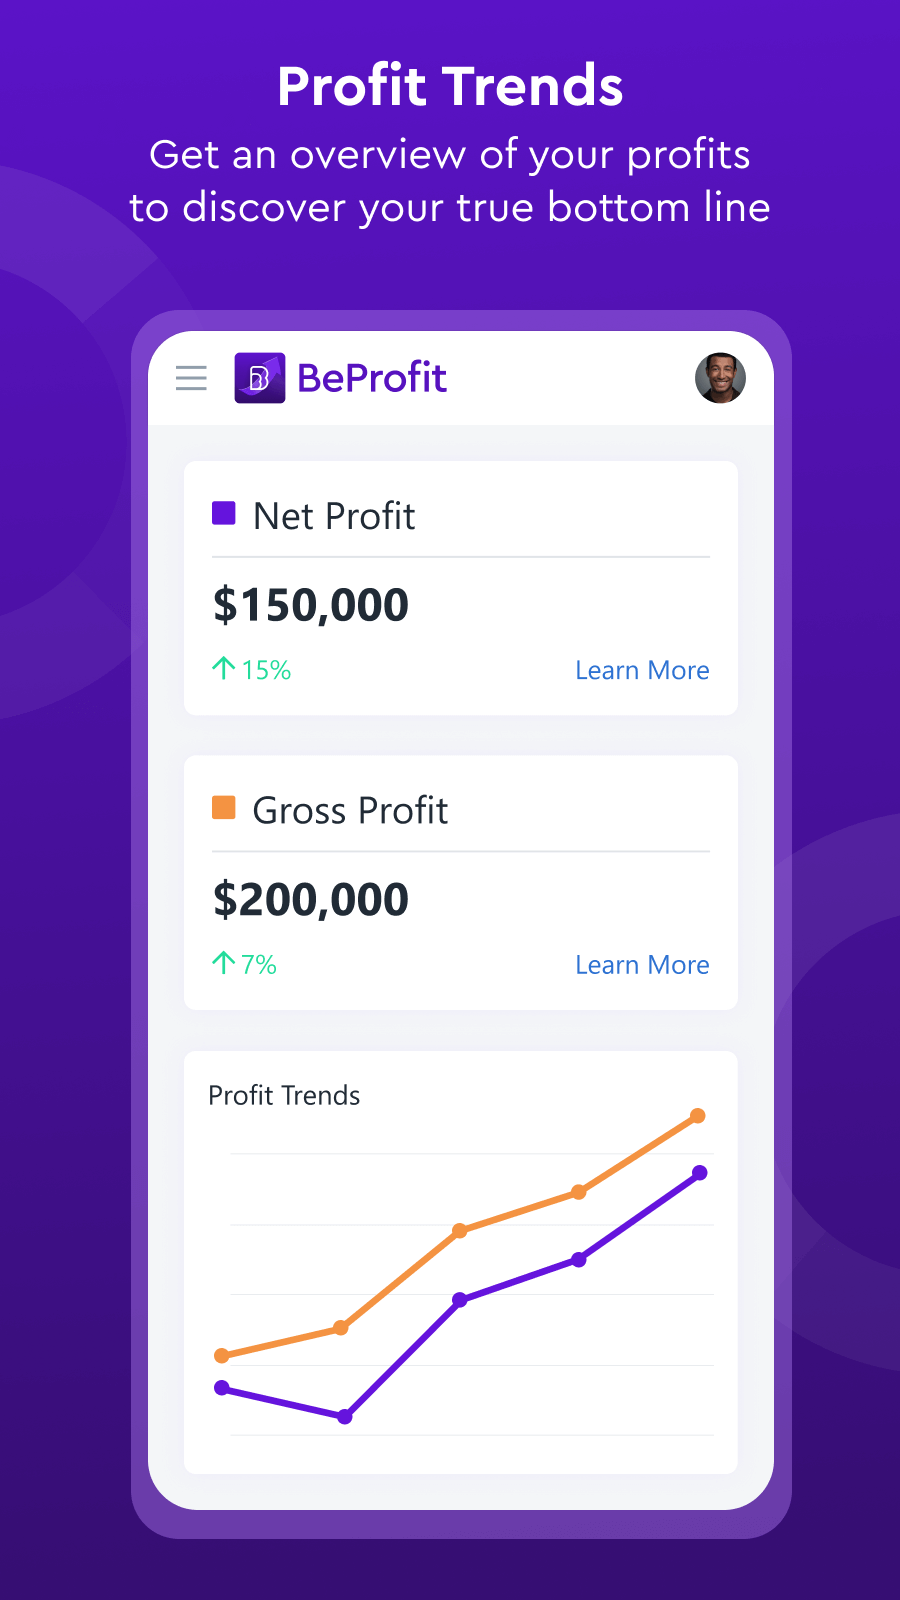 Get an overview of your profit to discover your true bottom line